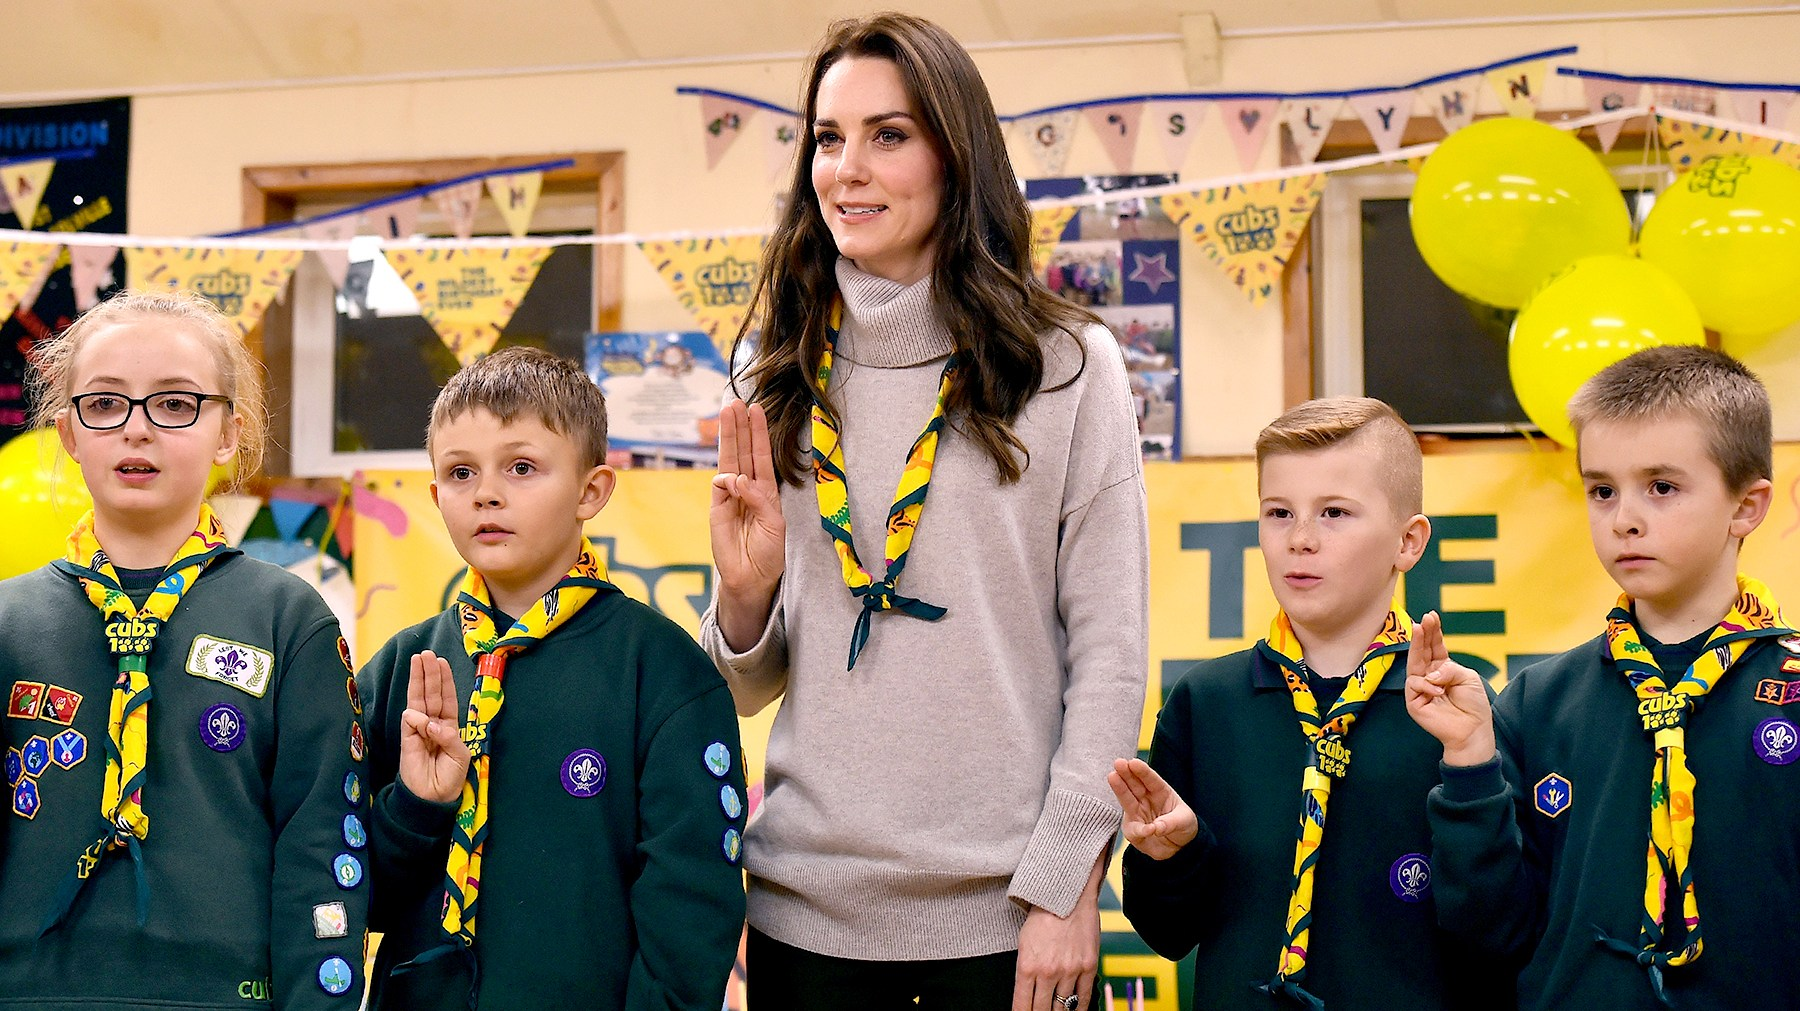 Britain's Catherine, Duchess of Cambridge (C), reads the Scouts promise during a Cub Scout Pack meeting with cubs from the Kings Lynn District, in Kings Lynn, eastern England, on December 14, 2016, to celebrate 100 years of Cubs. The Duchess attended a special Cub Scout Pack meeting with Cubs from the Kings Lynn District to celebrate 100 years of Cubs. Cub Scouting was co-founded by Robert Baden-Powell and Vera Barclay on the 16th December 1916.